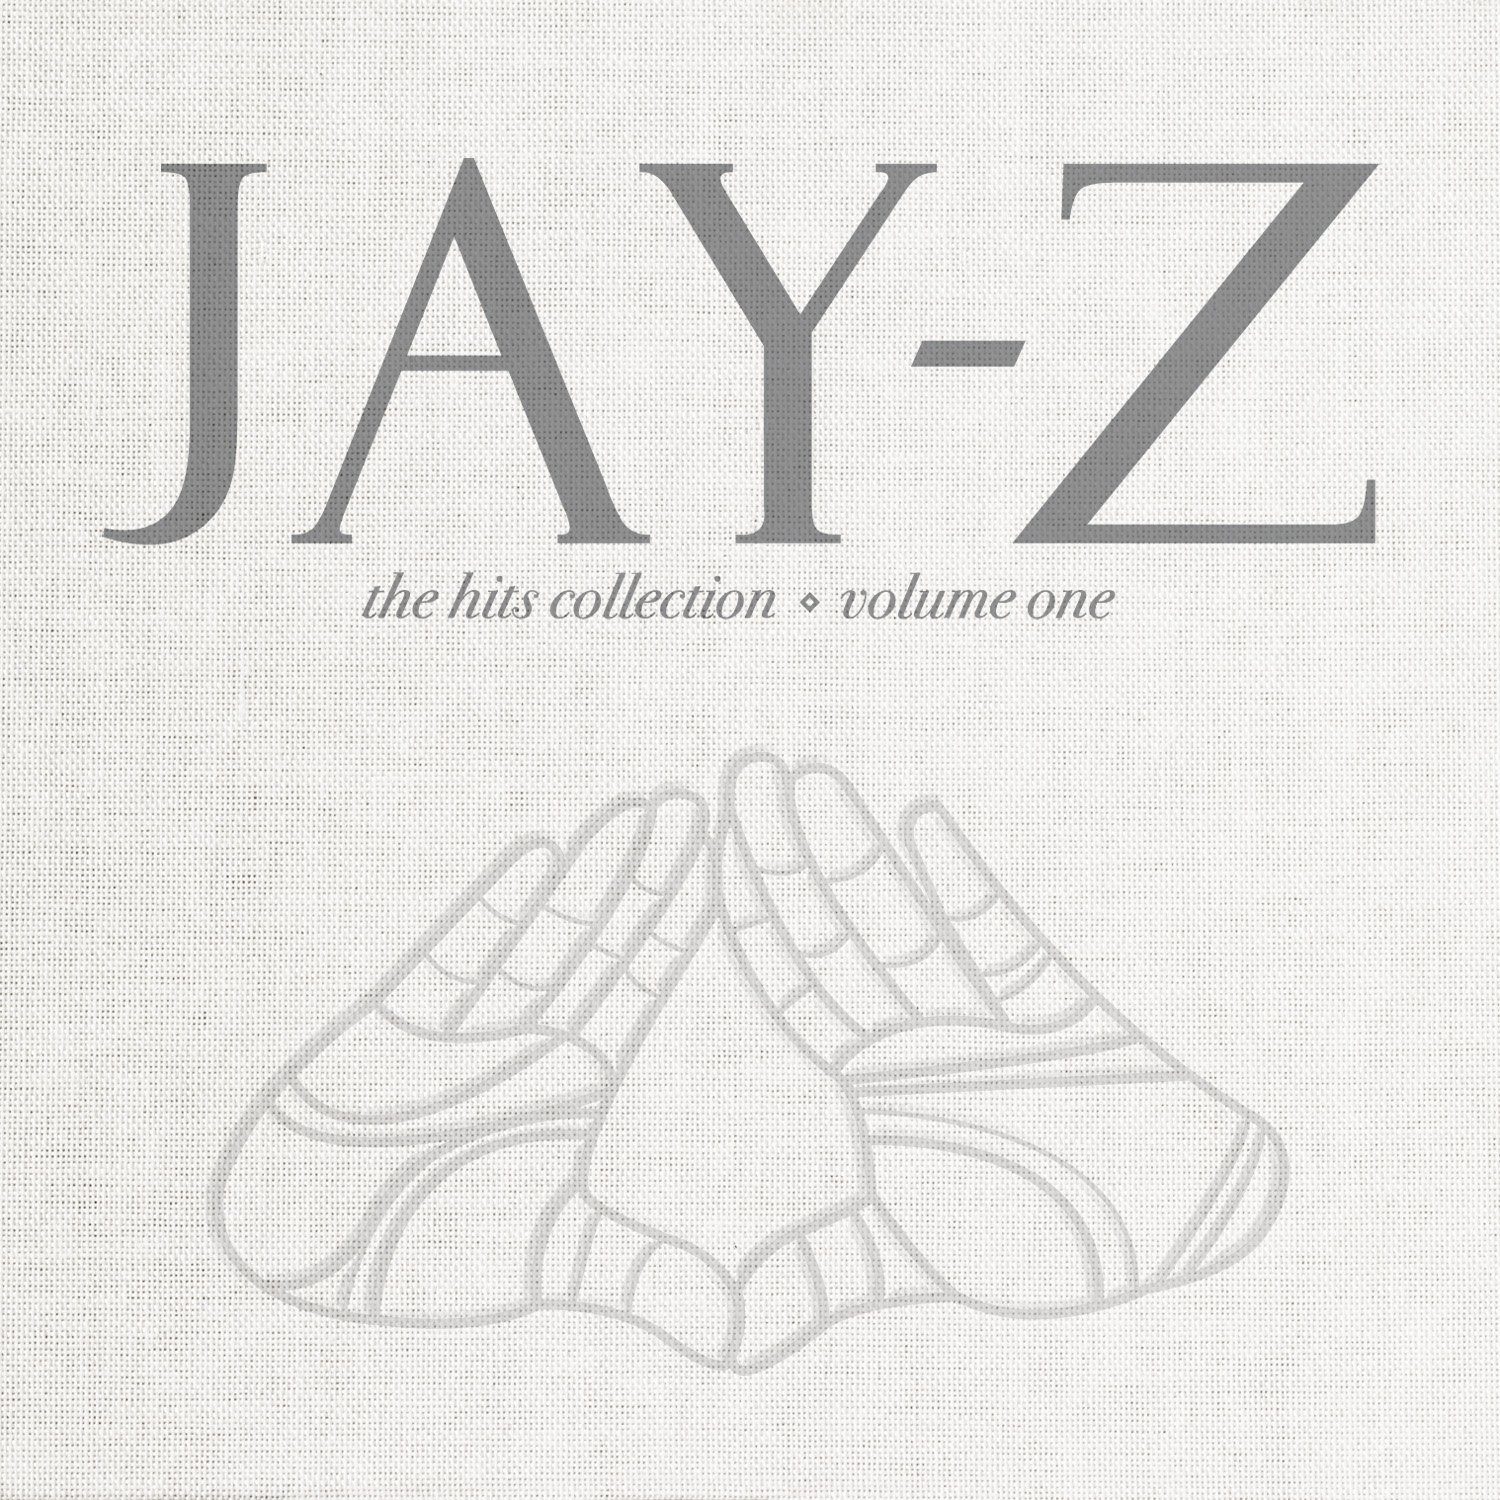 jay z the hits collection vol 1 high quality artwork Would Sumo Wrestlers Be Good Hockey Goalies? « solomondubner